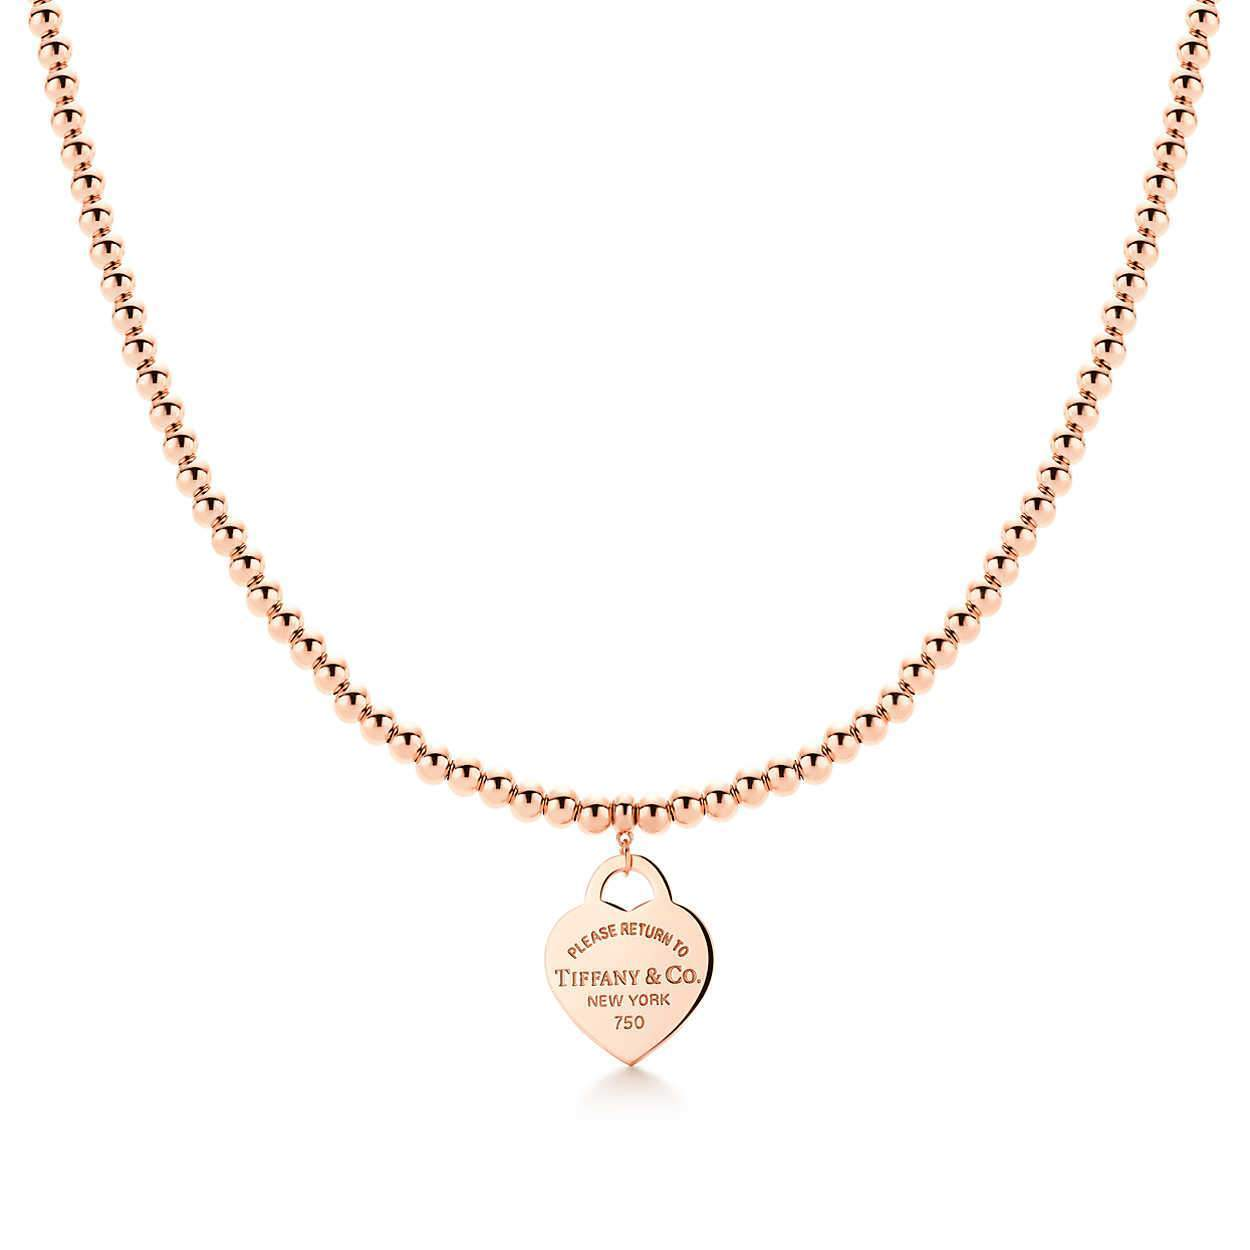 0f5c7e165 Tiffany & Co. Return To Tiffany Gold Heart Tag Pendant Bead Necklace  Necklaces Tiffany ...